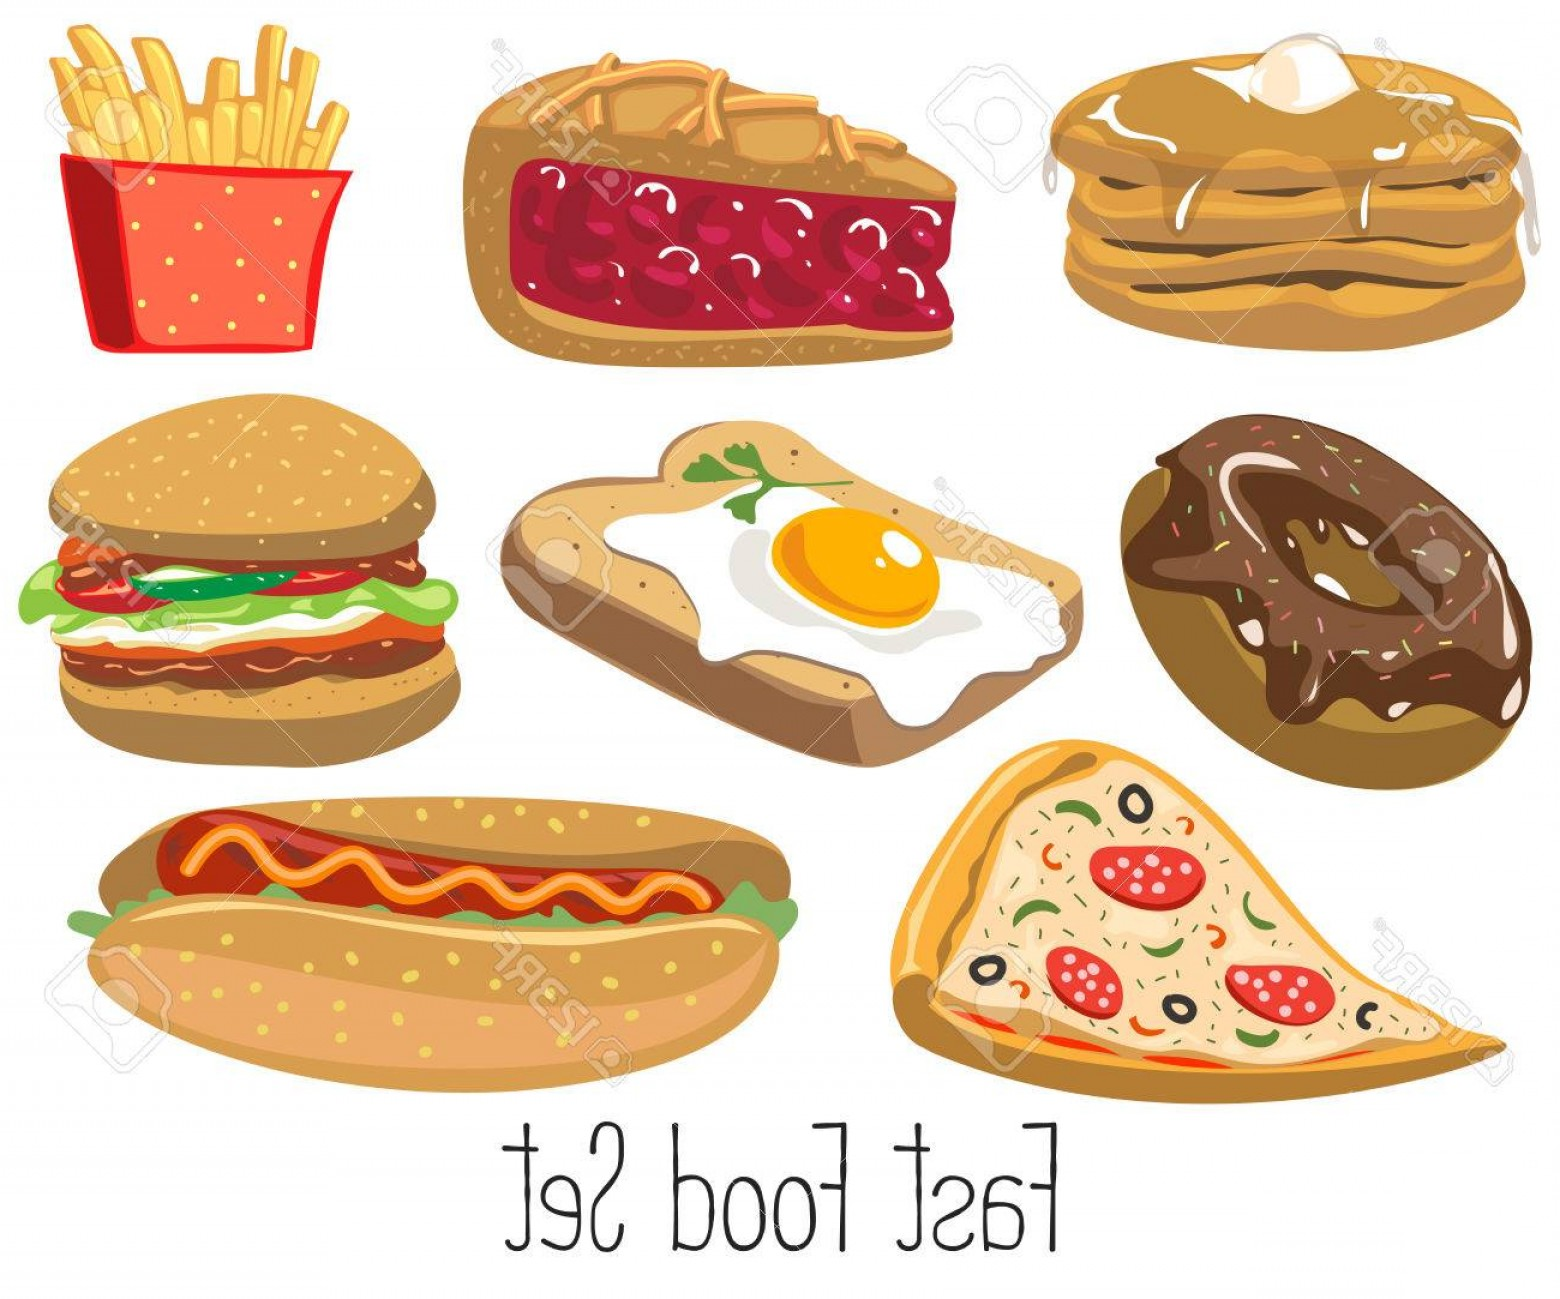 Food Vector Png, png collections at sccpre.cat.